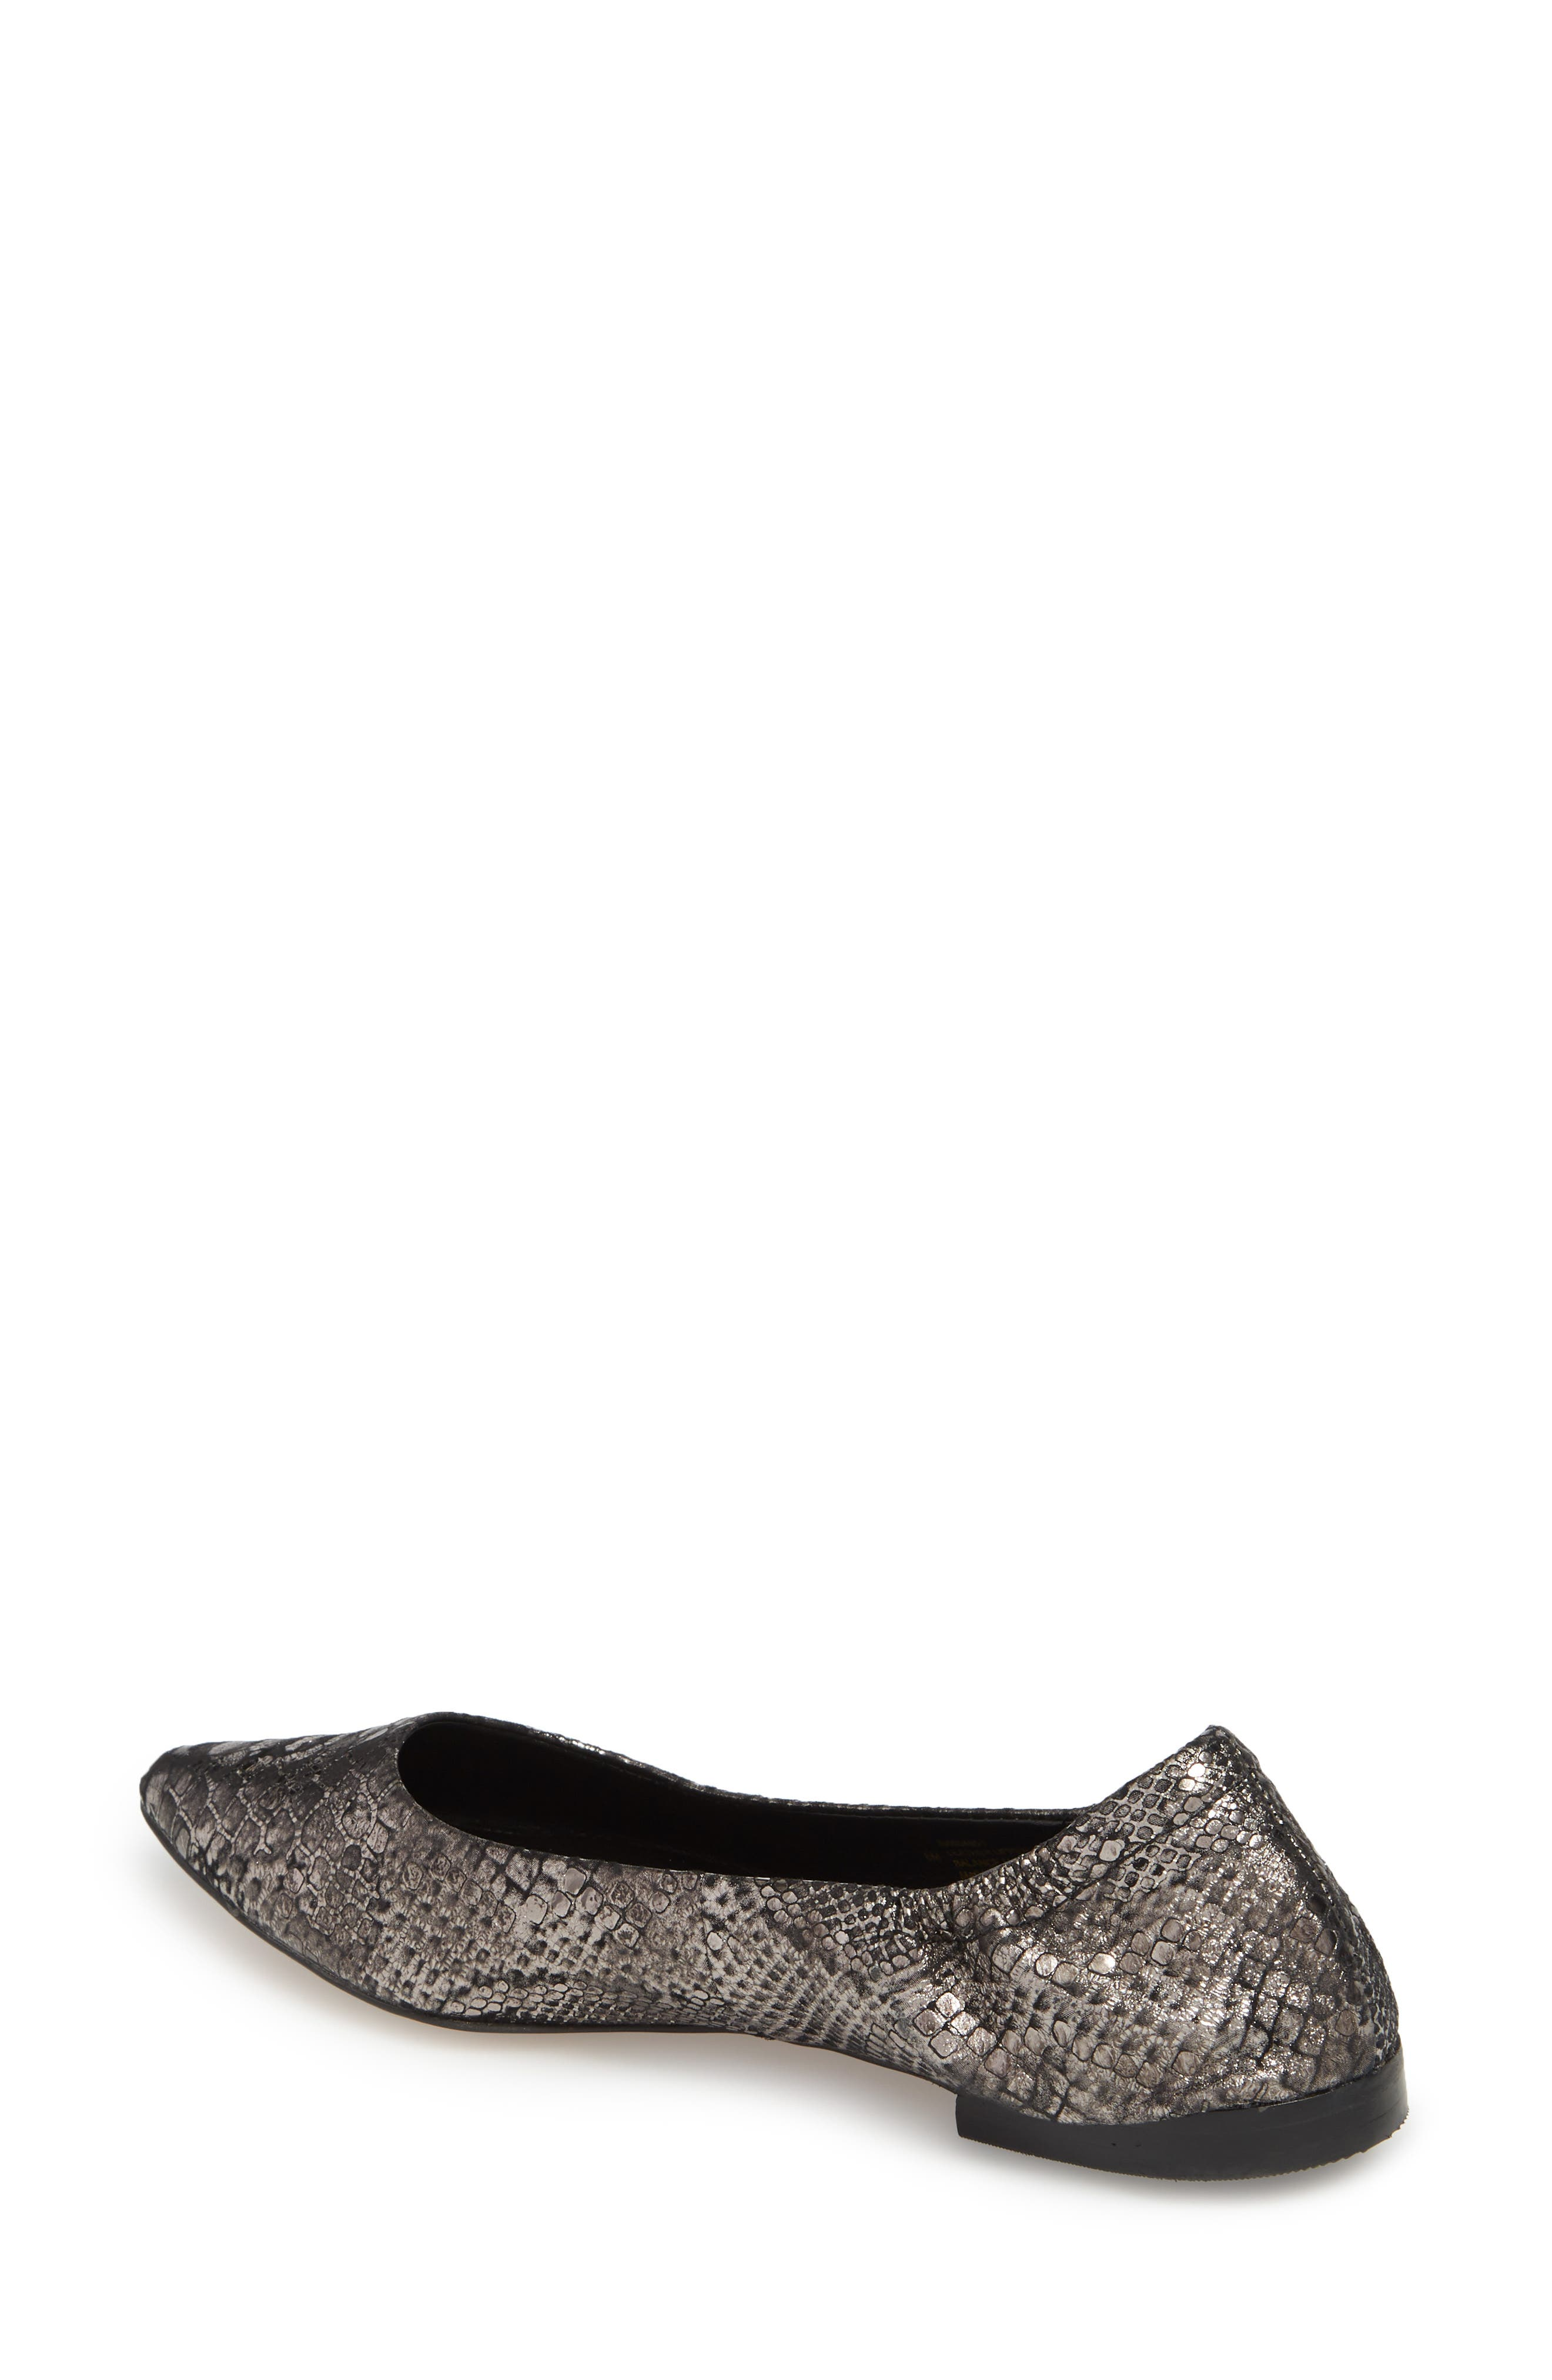 Isola Padra Pointy Toe Flat,                             Alternate thumbnail 2, color,                             PEWTER LEATHER